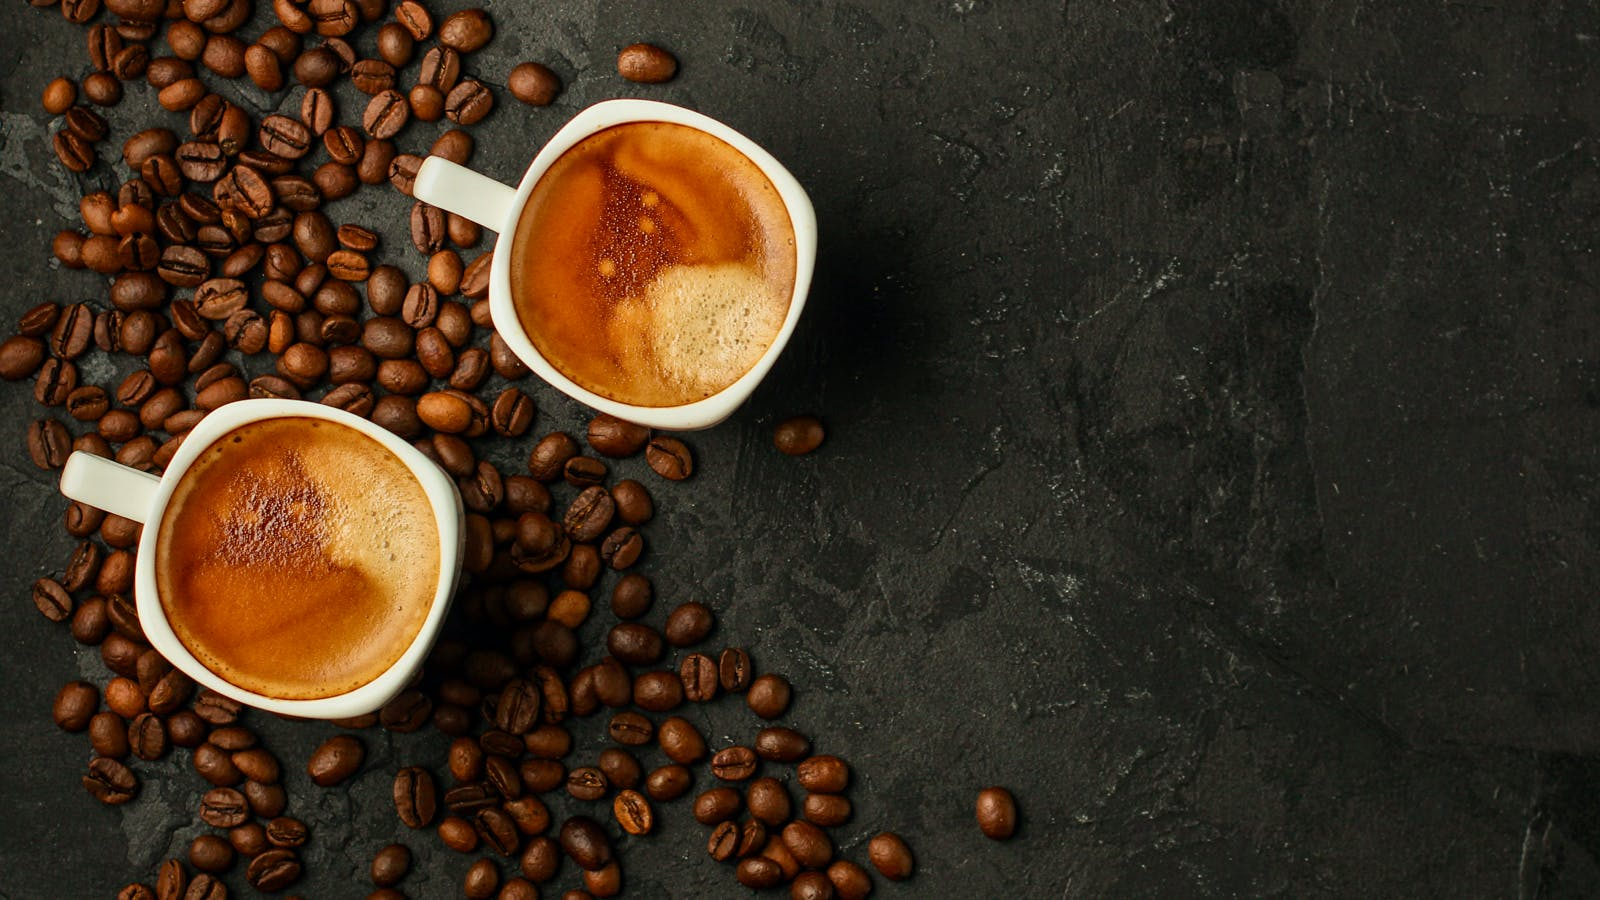 Coffee No Longer Requires Cancer Warning in California